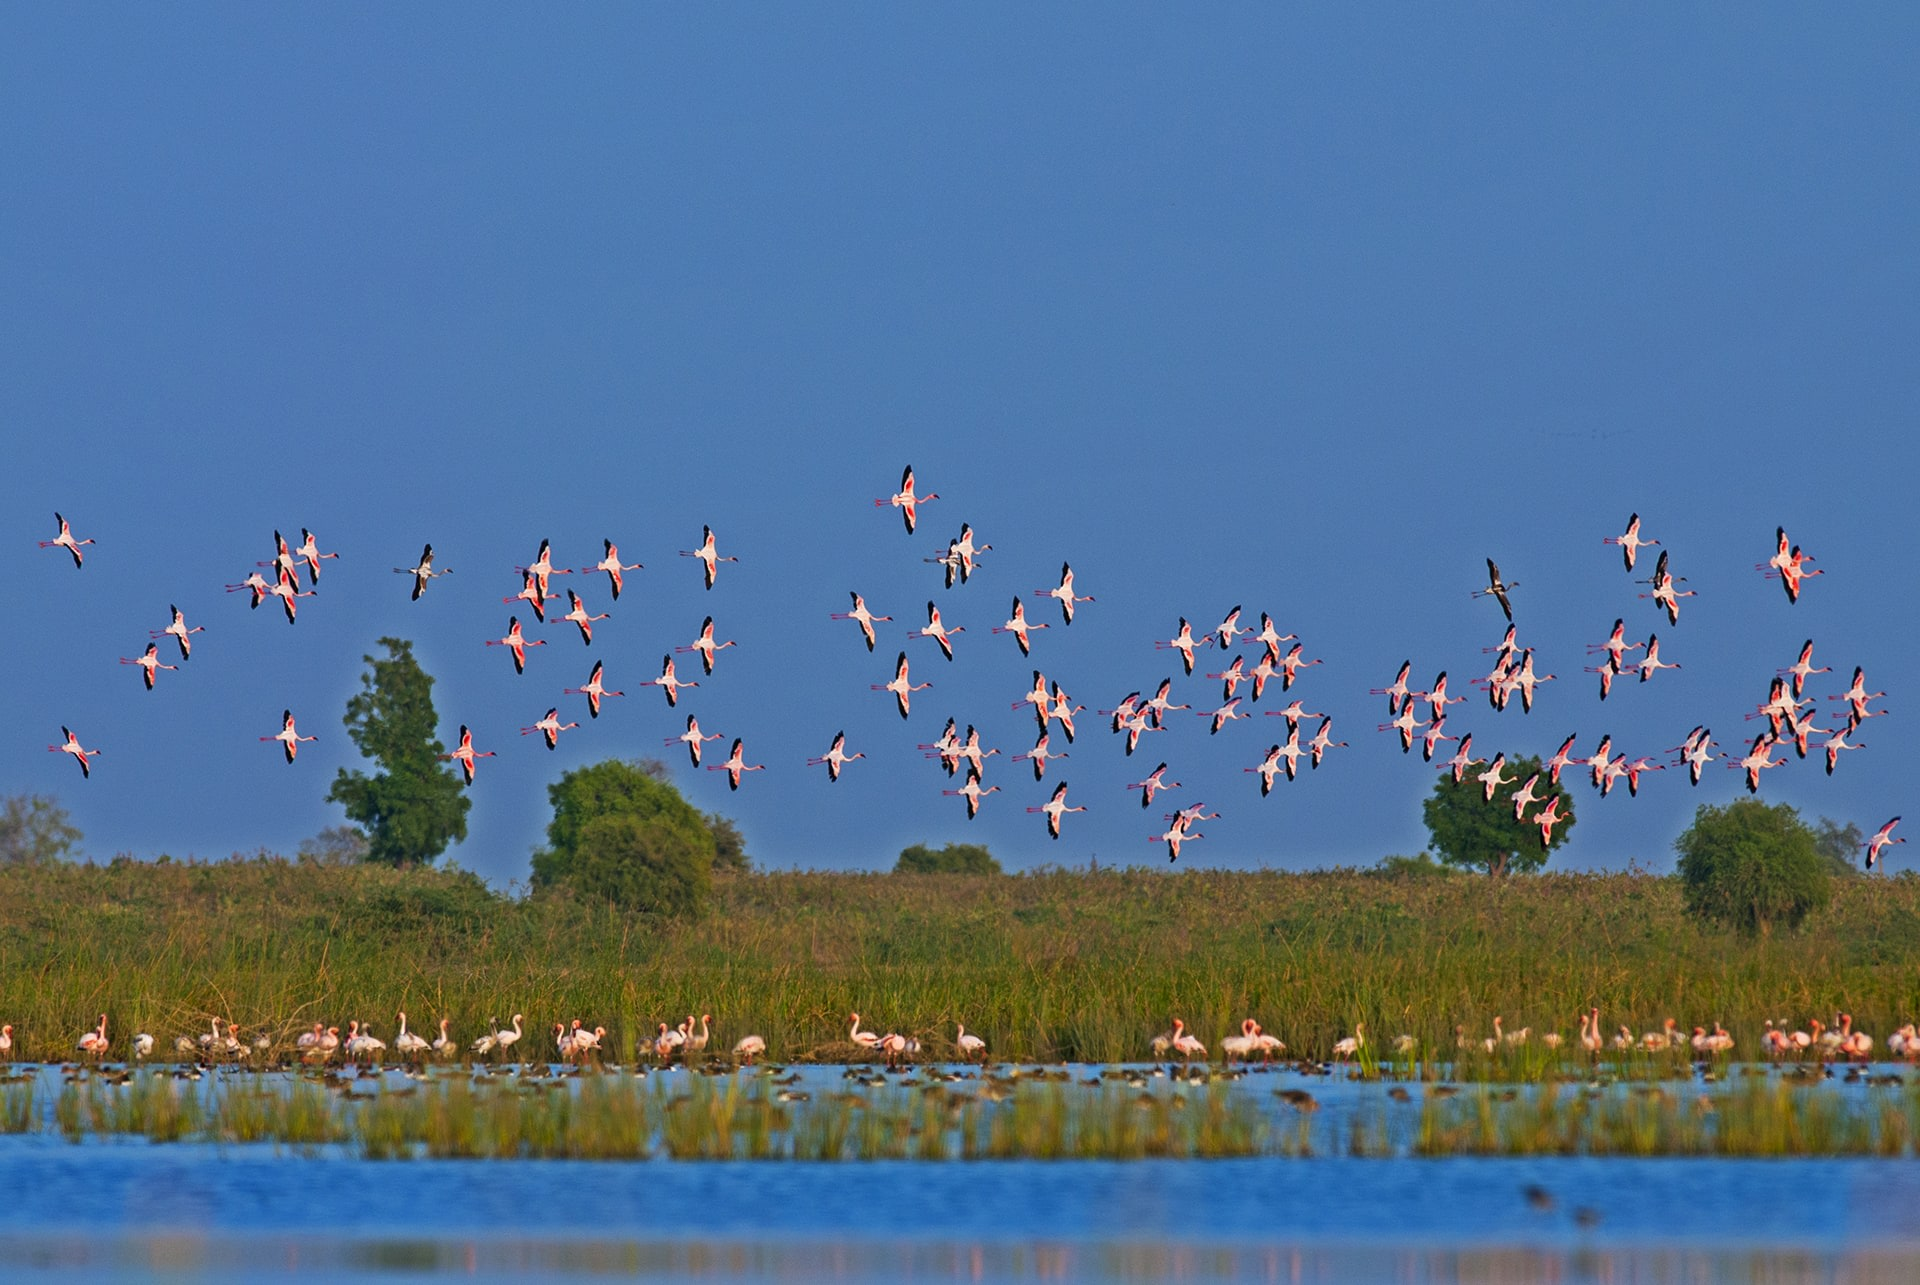 """The birds arrive in the Little Rann around mid-June. """"The first rain is an indicator for adult flamingos to move towards their nesting grounds in the Rann,"""" says Shah. """"The wetlands, about 40-100 km away, which are their foraging grounds, start to empty at this time."""" Inundation is important to the flamingos as it ensures food, but also because it provides these ground-nesting birds materials for nests and safety from ground predators."""